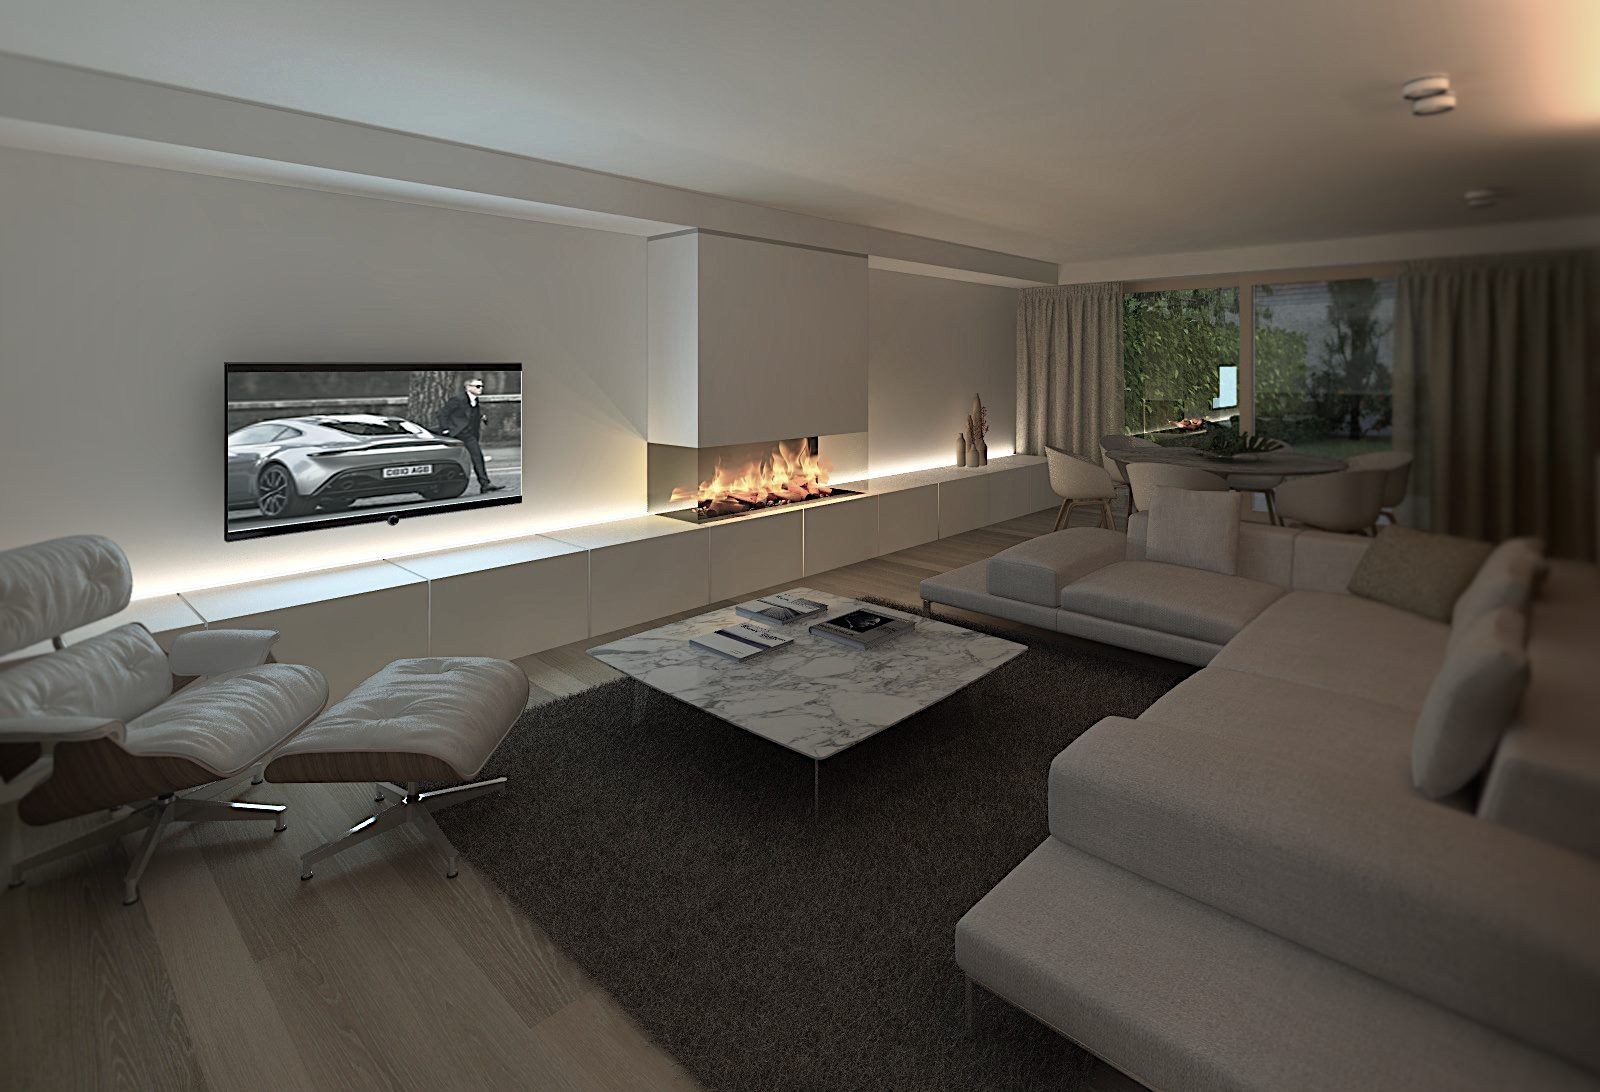 Pin by GB inspires on Interiors | Pinterest | Living rooms ...